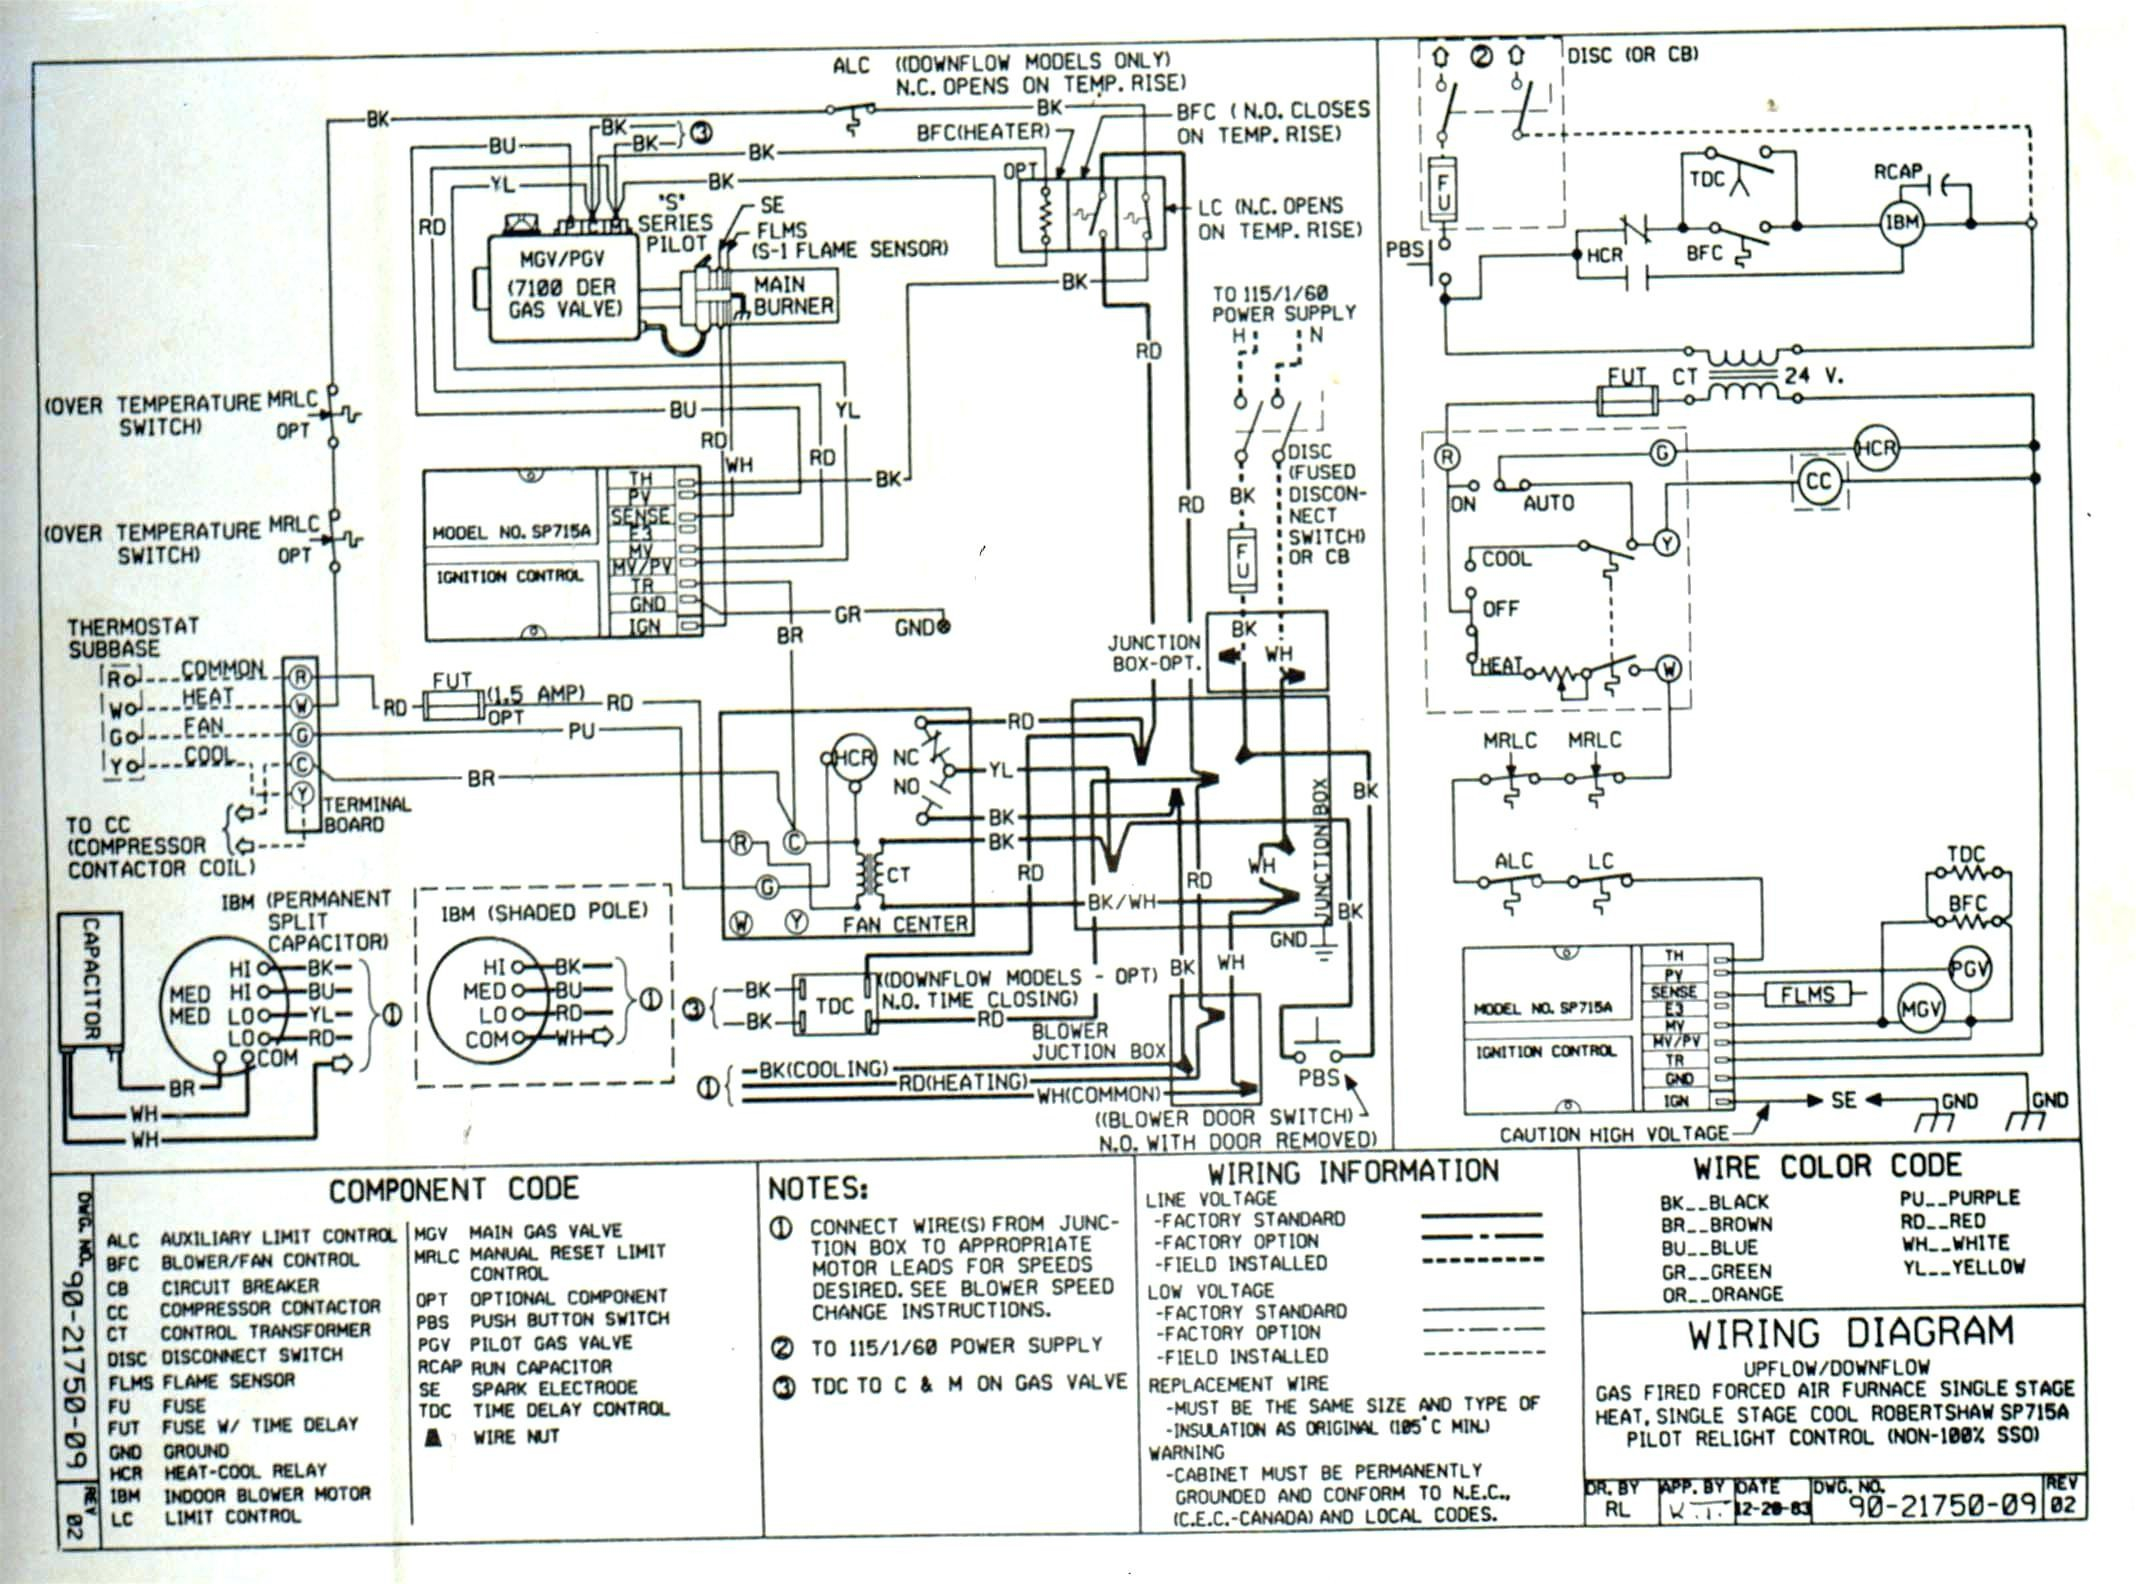 Trane thermostat Wiring Diagram Sample